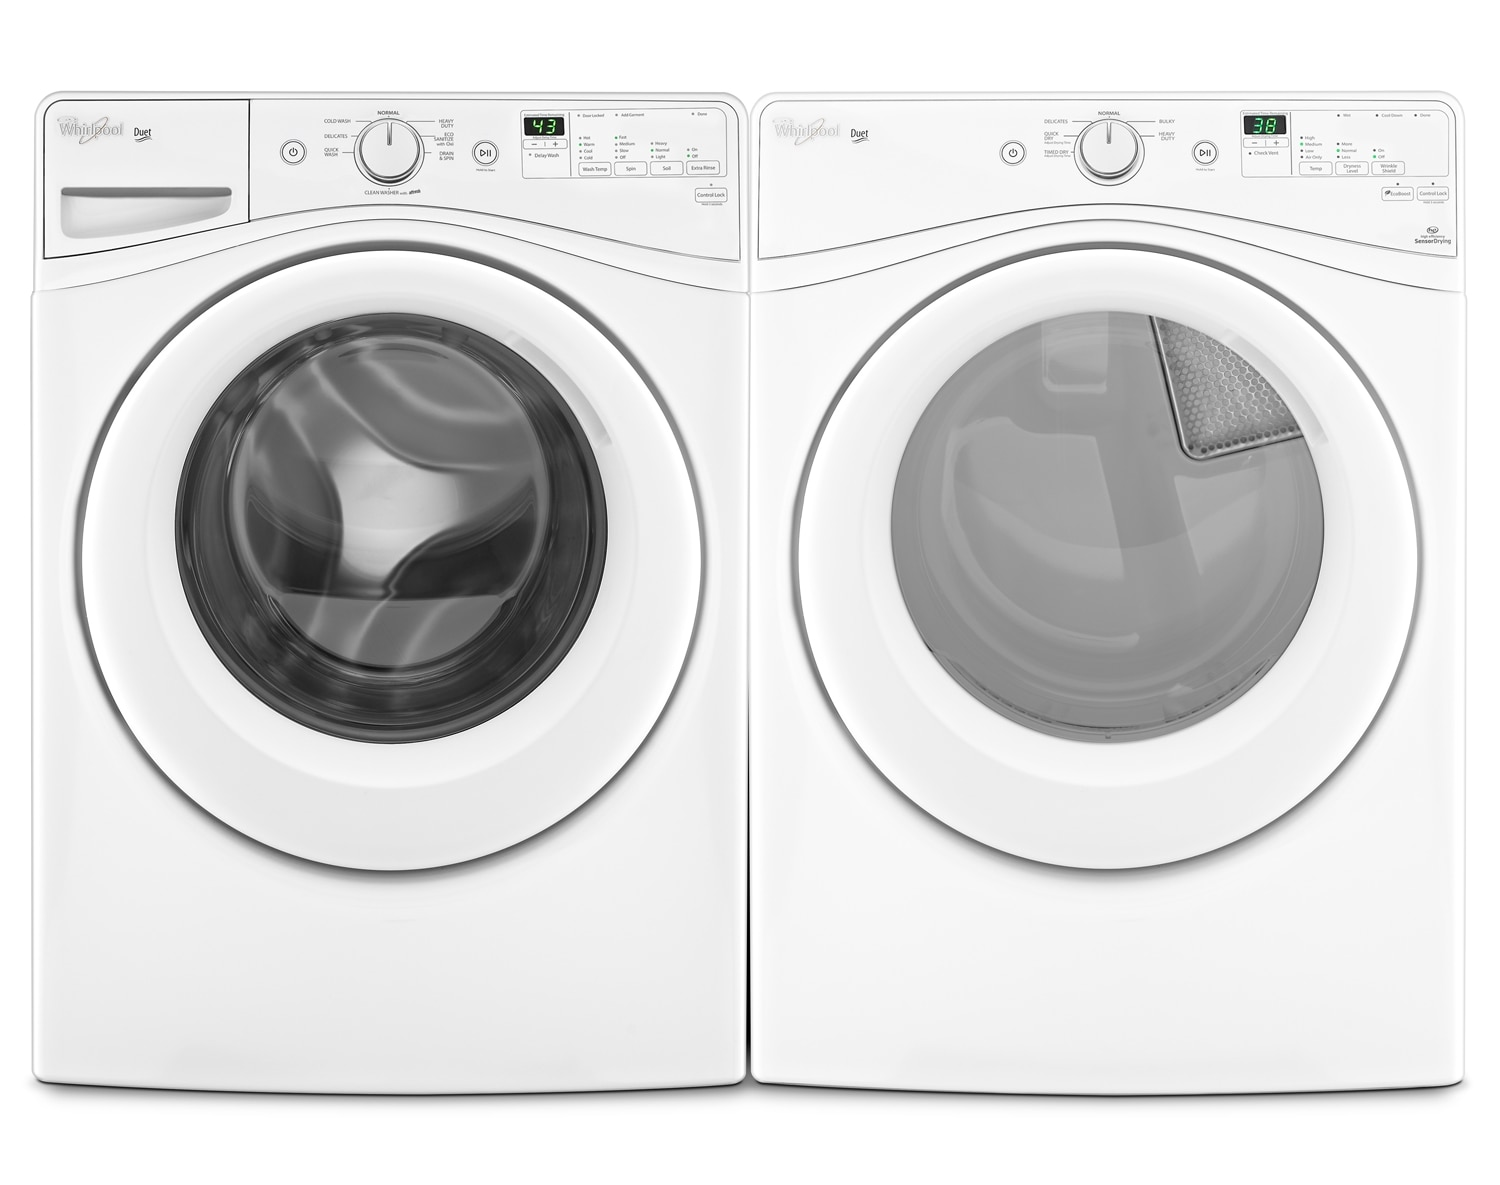 Whirlpool Laundry - WFW72HEDW/YWED72HEDW